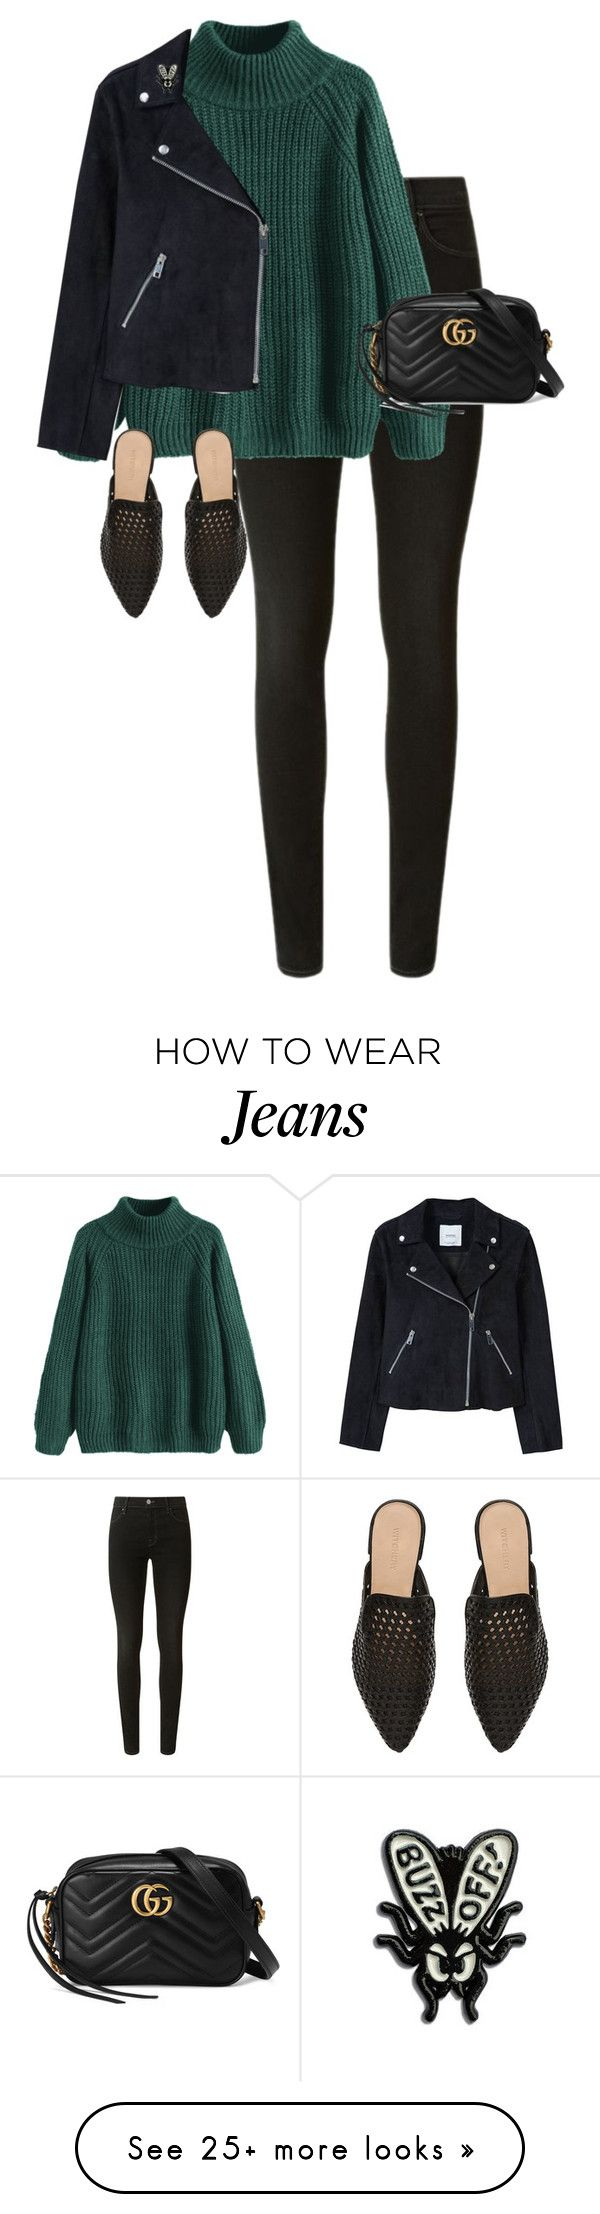 """Untitled #13701"" by alexsrogers on Polyvore featuring J Brand, MANGO, Witchery and Gucci"